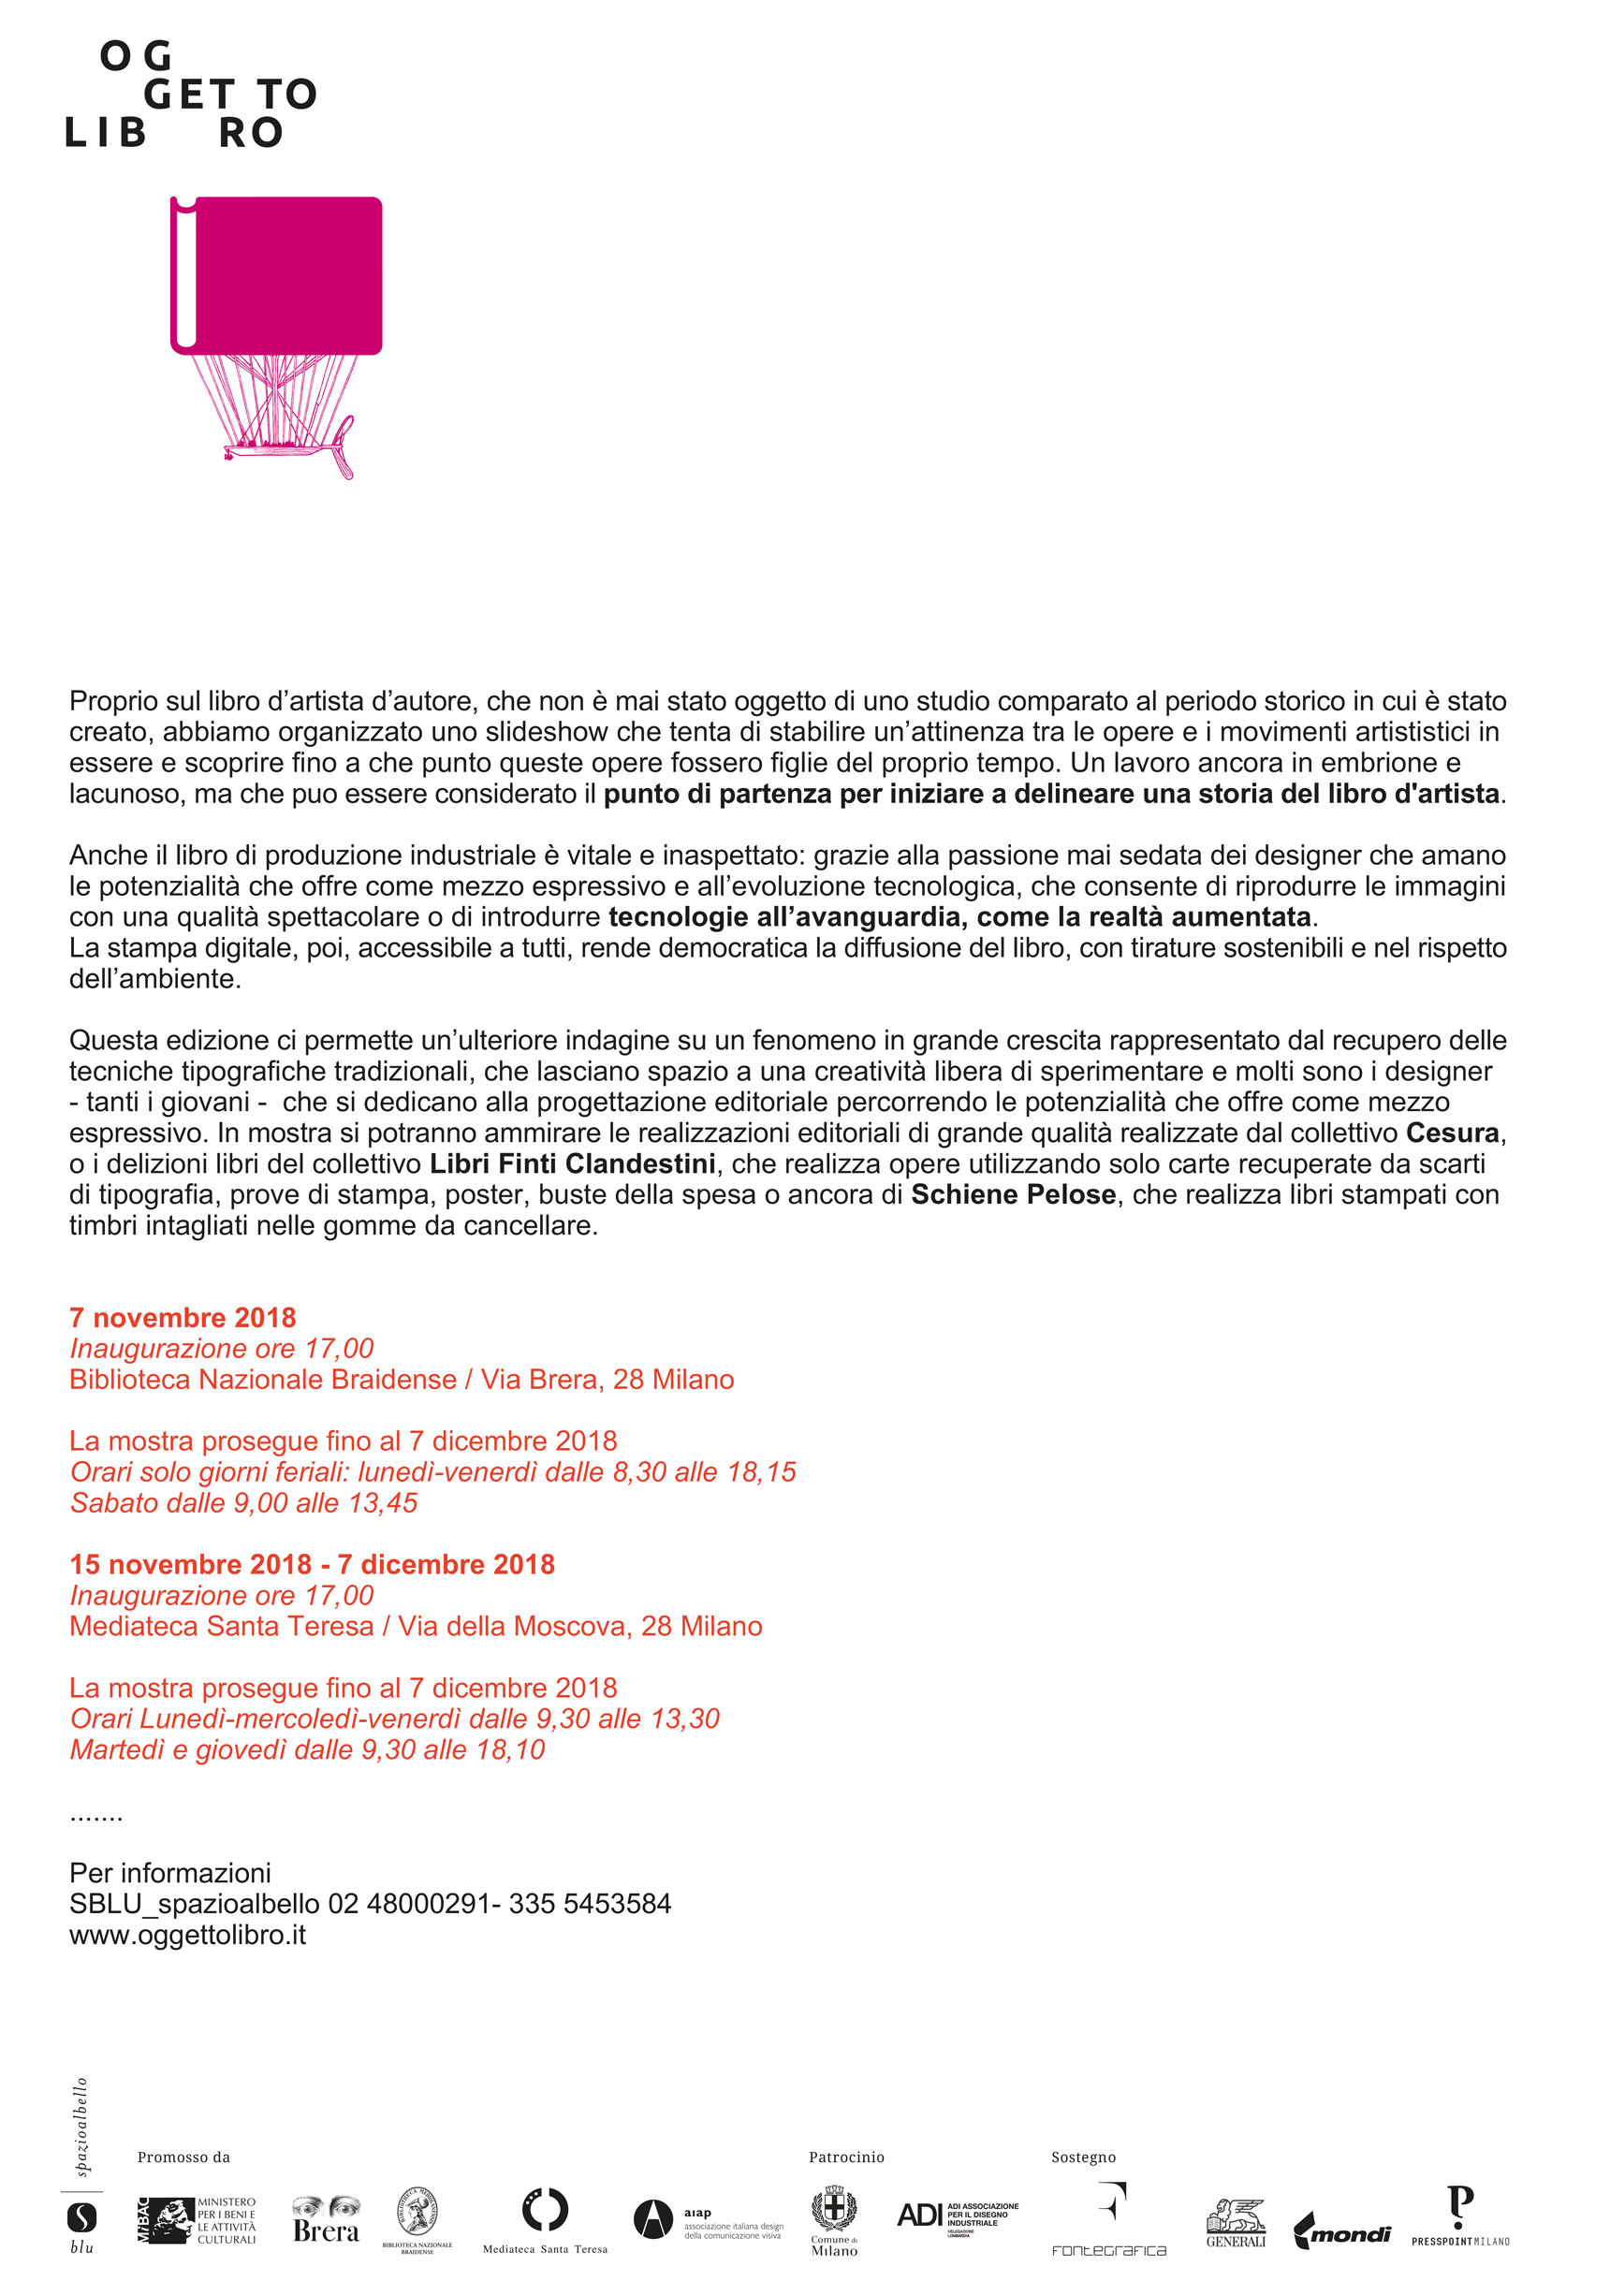 CS-Conferenza-Oggetto-Libro-2